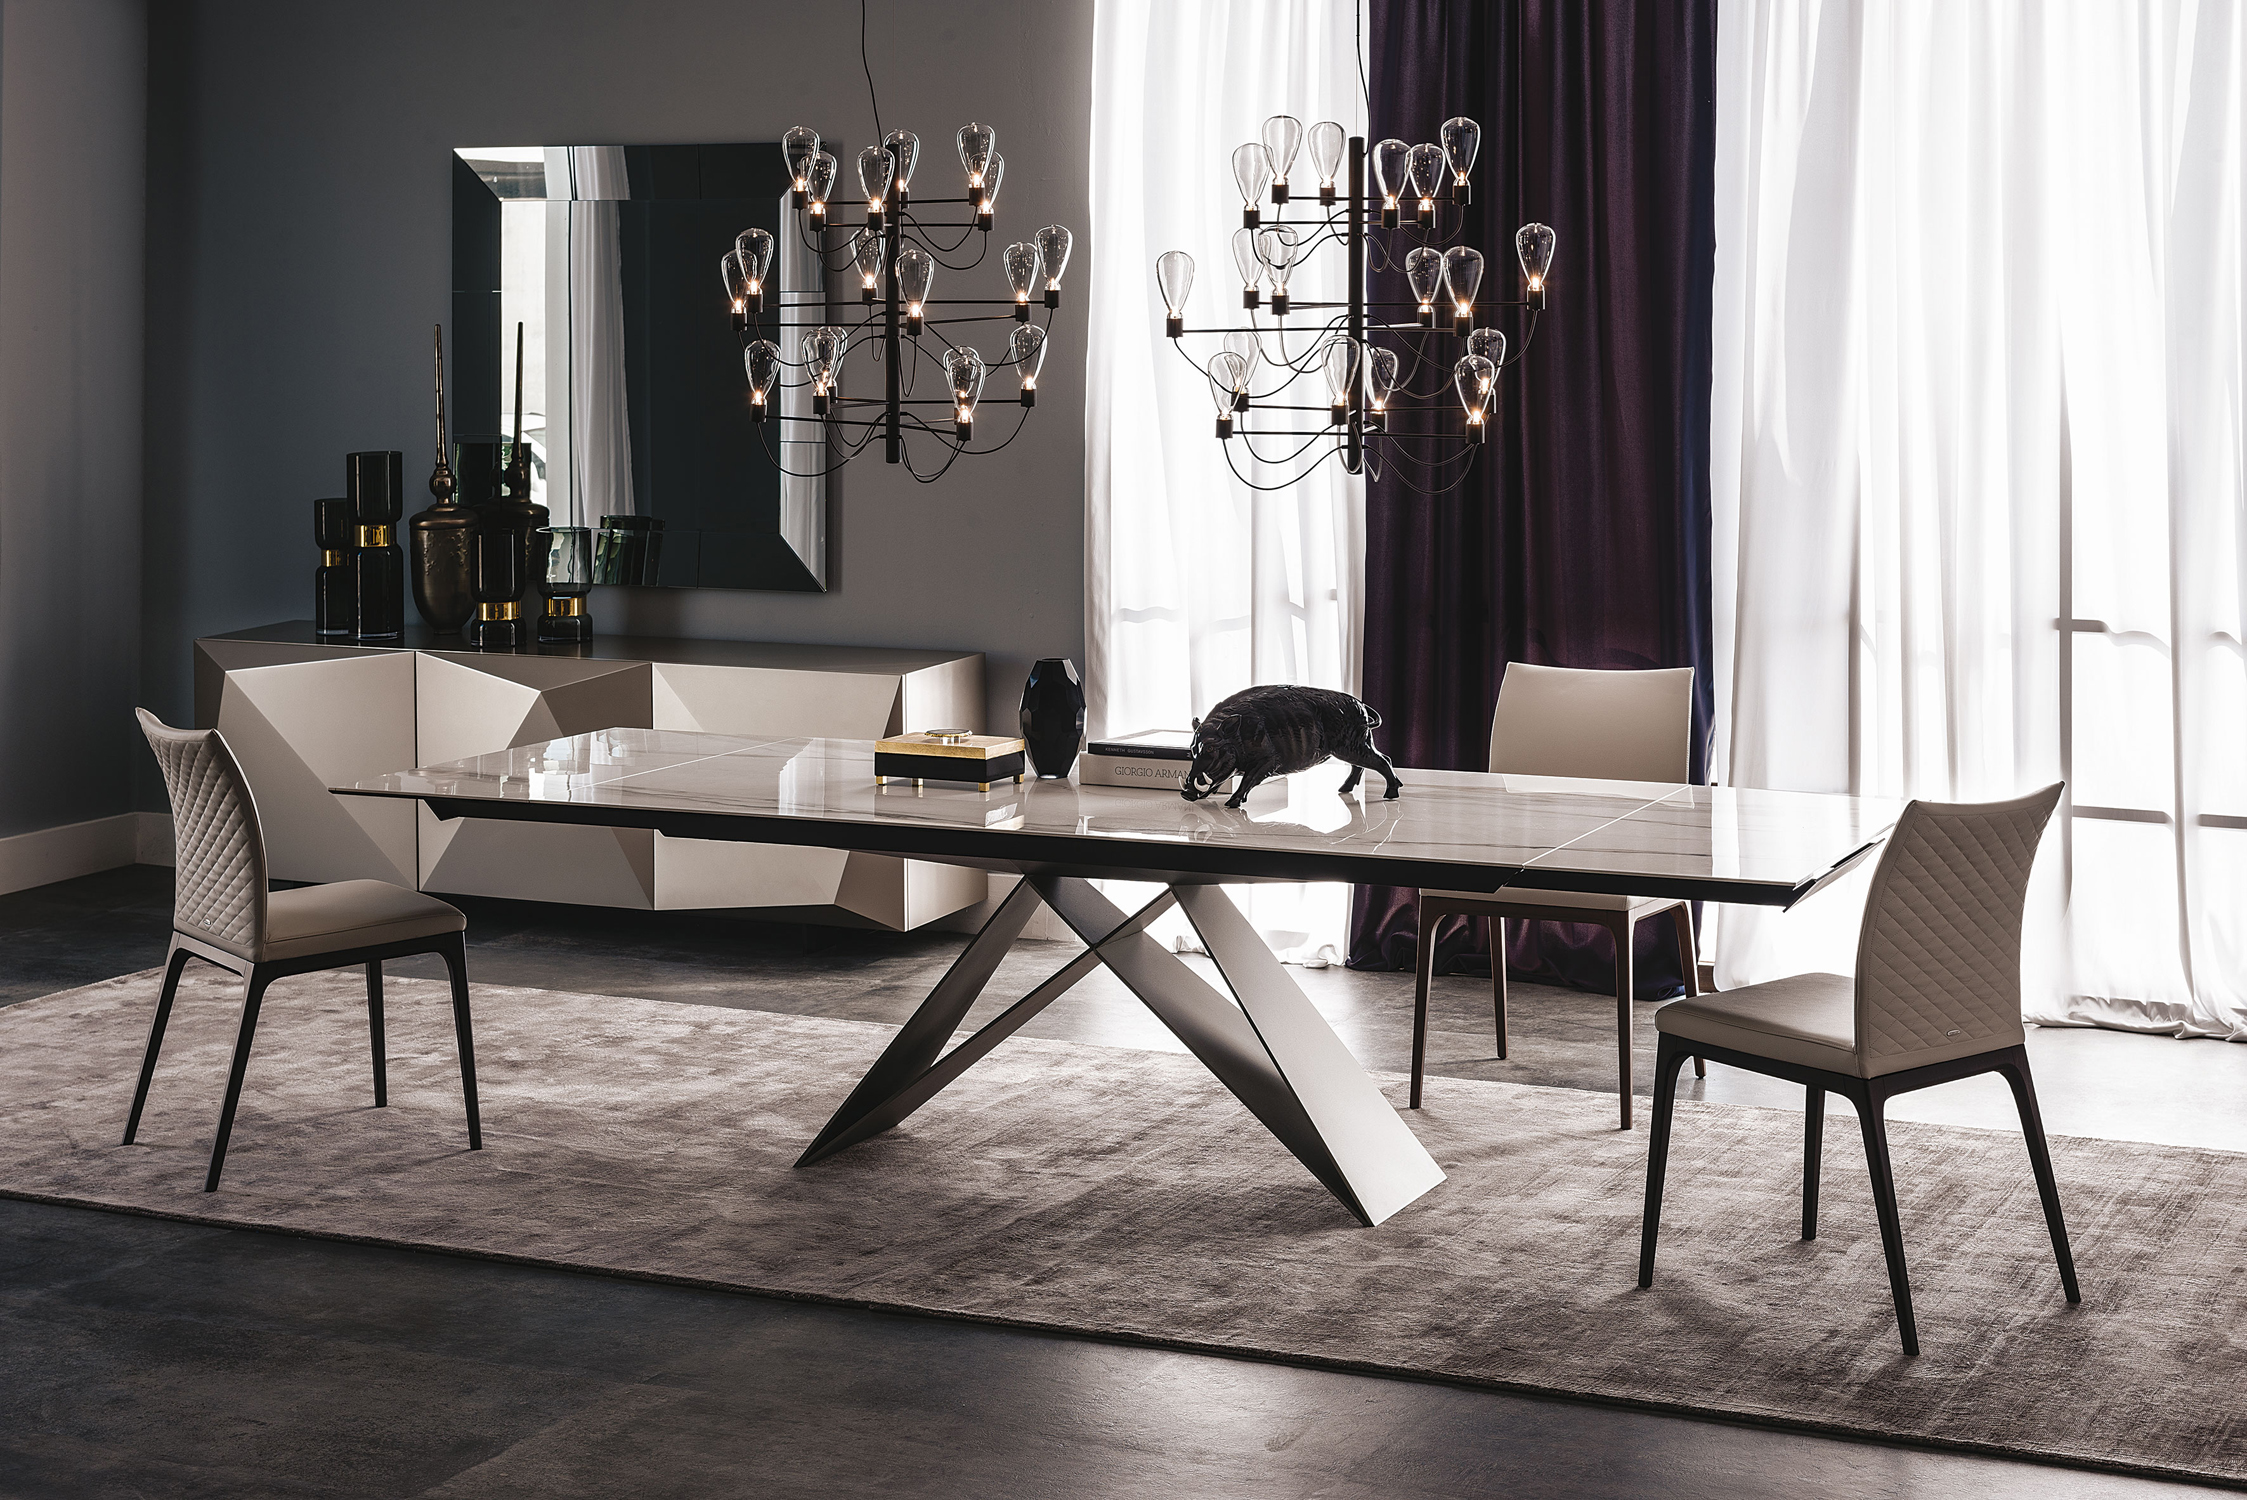 cattelan italia premier drive ceramic table buy from campbell watson. Black Bedroom Furniture Sets. Home Design Ideas